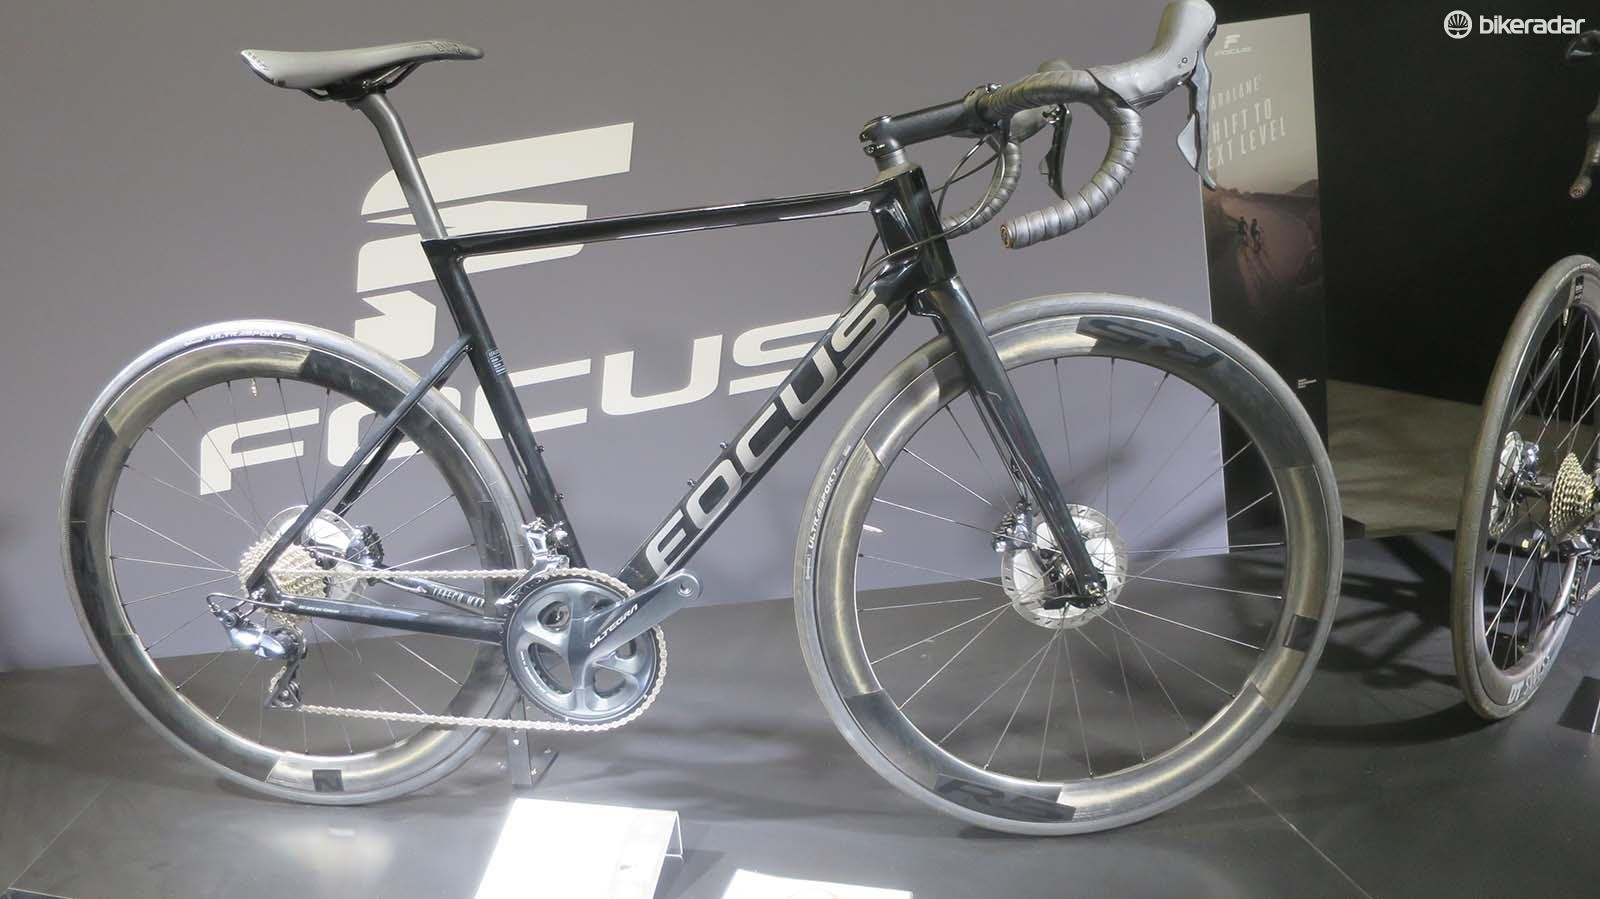 The £3,439 Max 8.8 uses mechanical Ultegra and 50mm deep Novatec carbon wheels